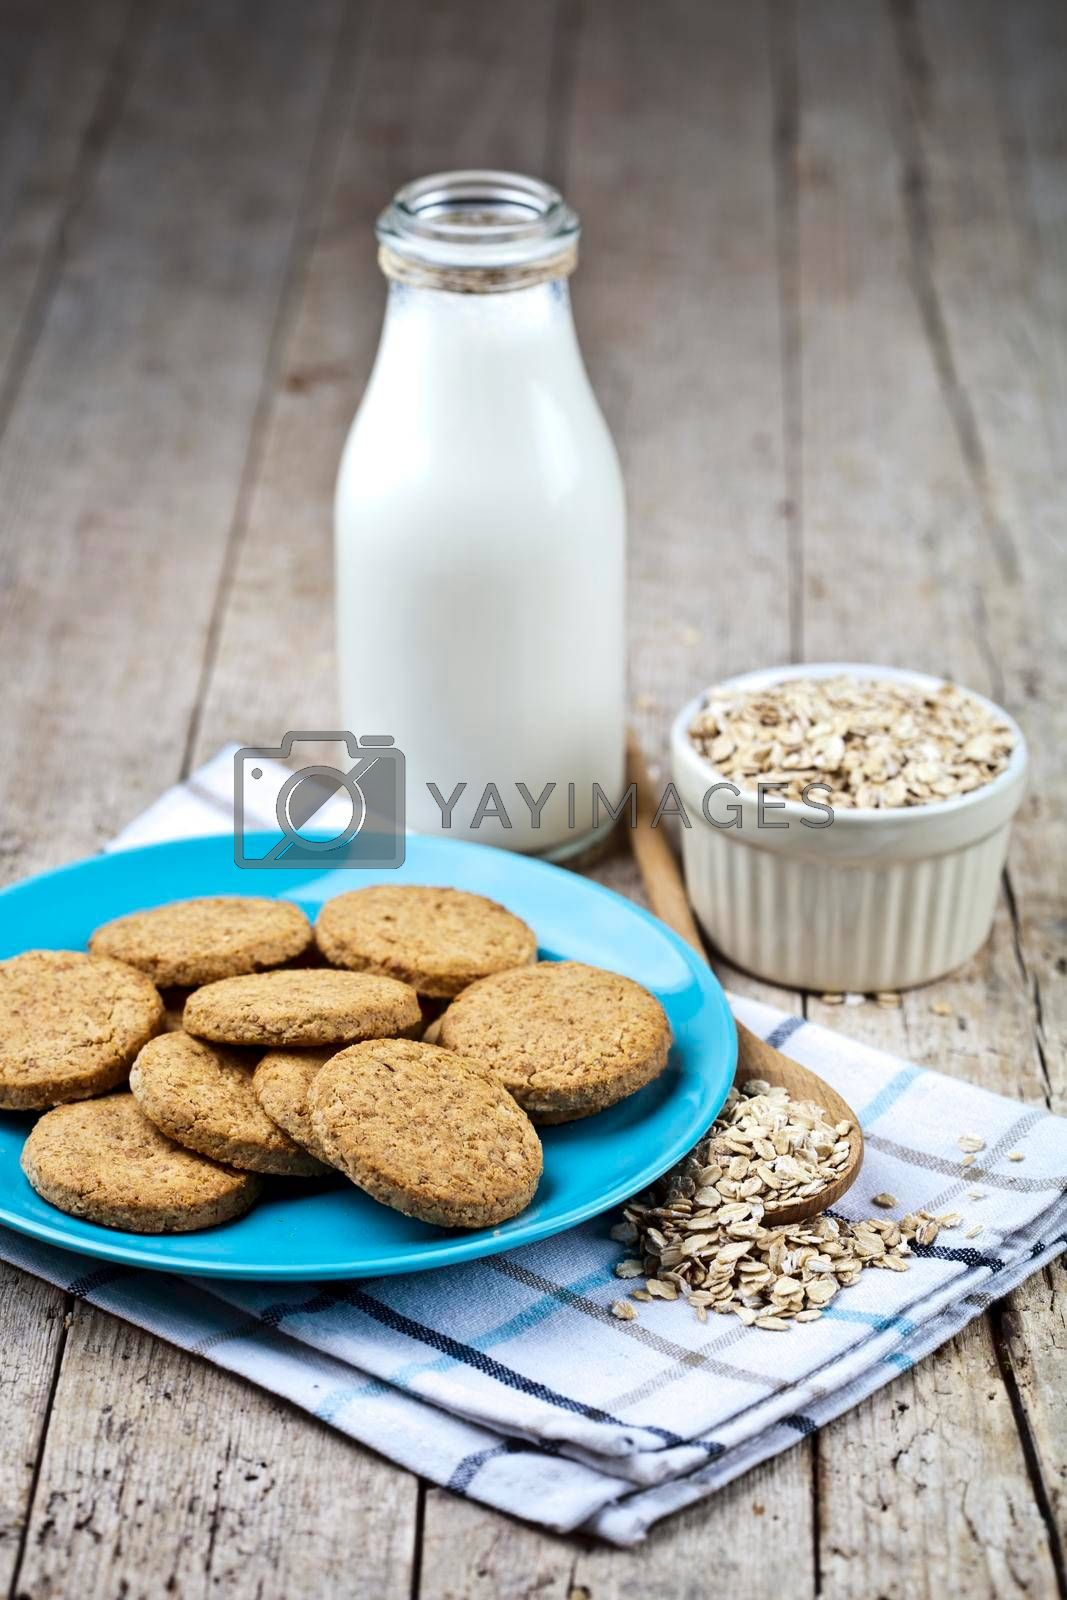 Fresh baked oat cookies on blue ceramic plate on linen napkin, bottle of milk and oak flakes on rustic wooden table background.